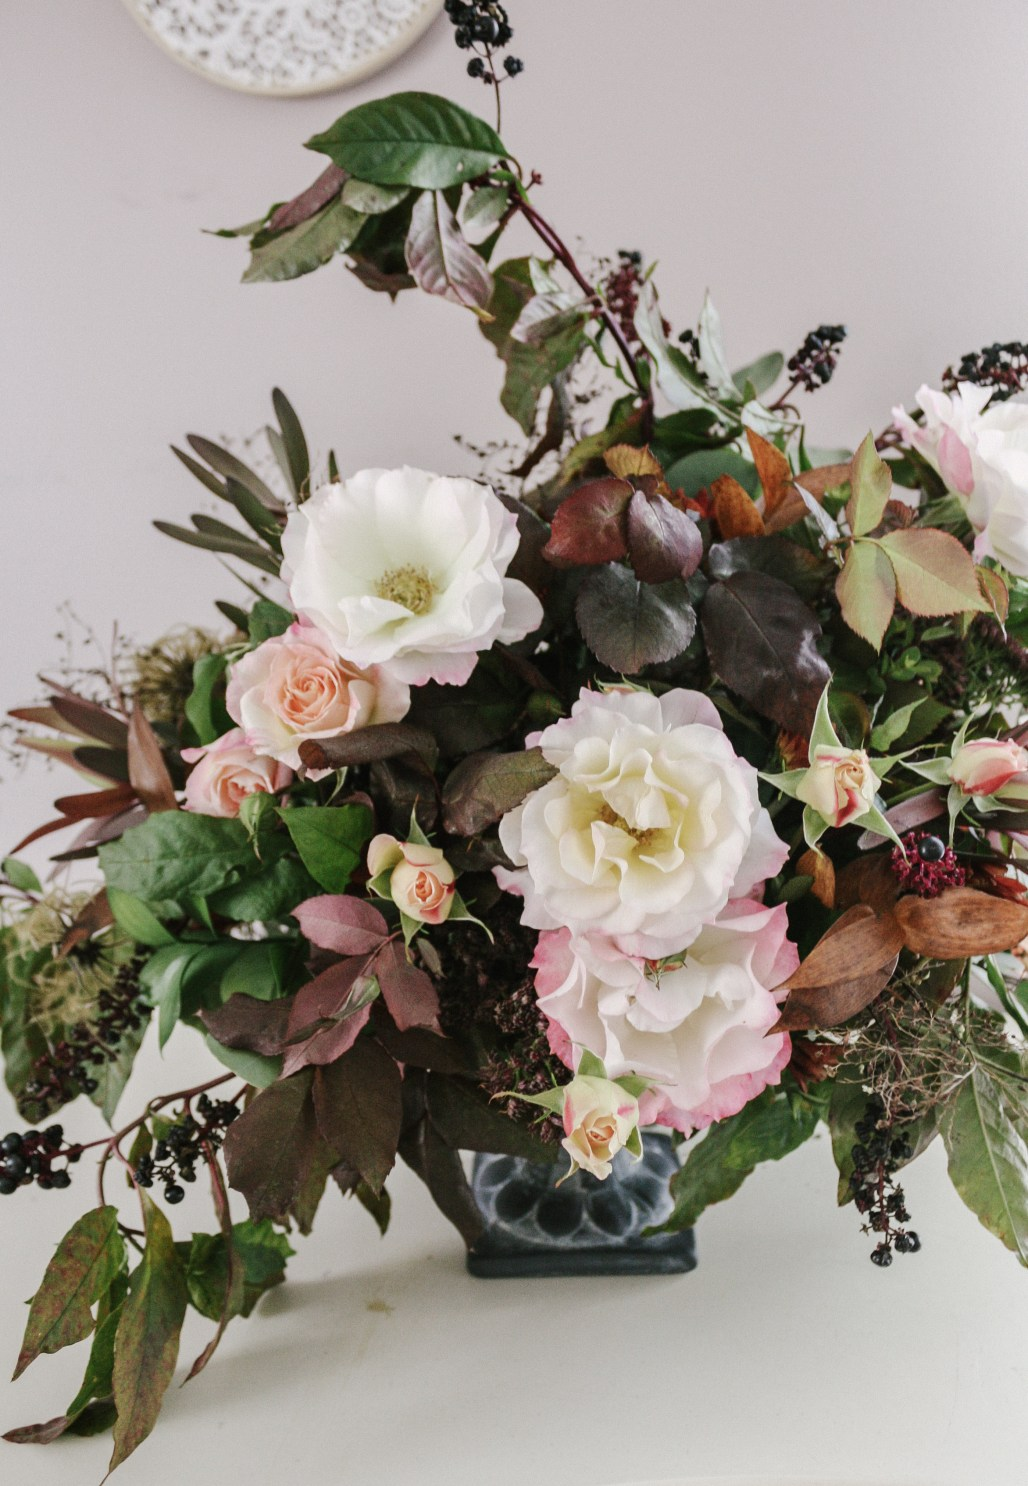 Foraged Blooms || Where Old World Meets Wild Bohemian Autumn || Dreamery Events